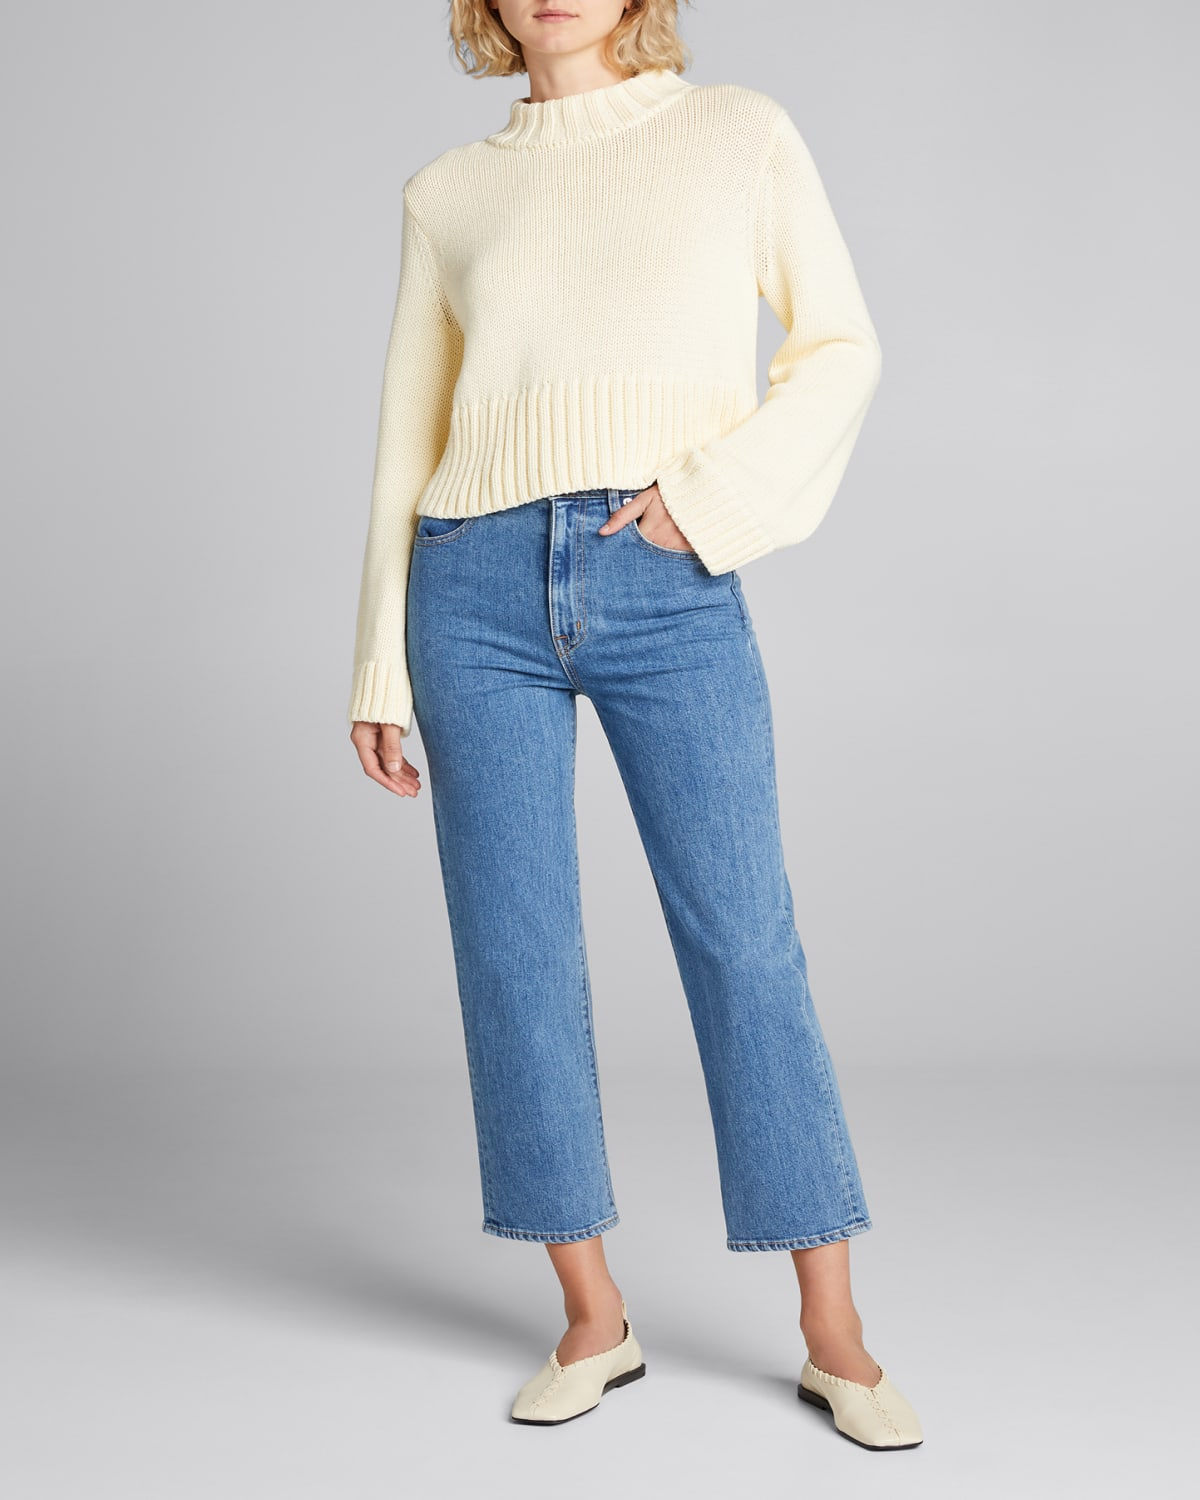 Verona Pullover with Ribbed Trim